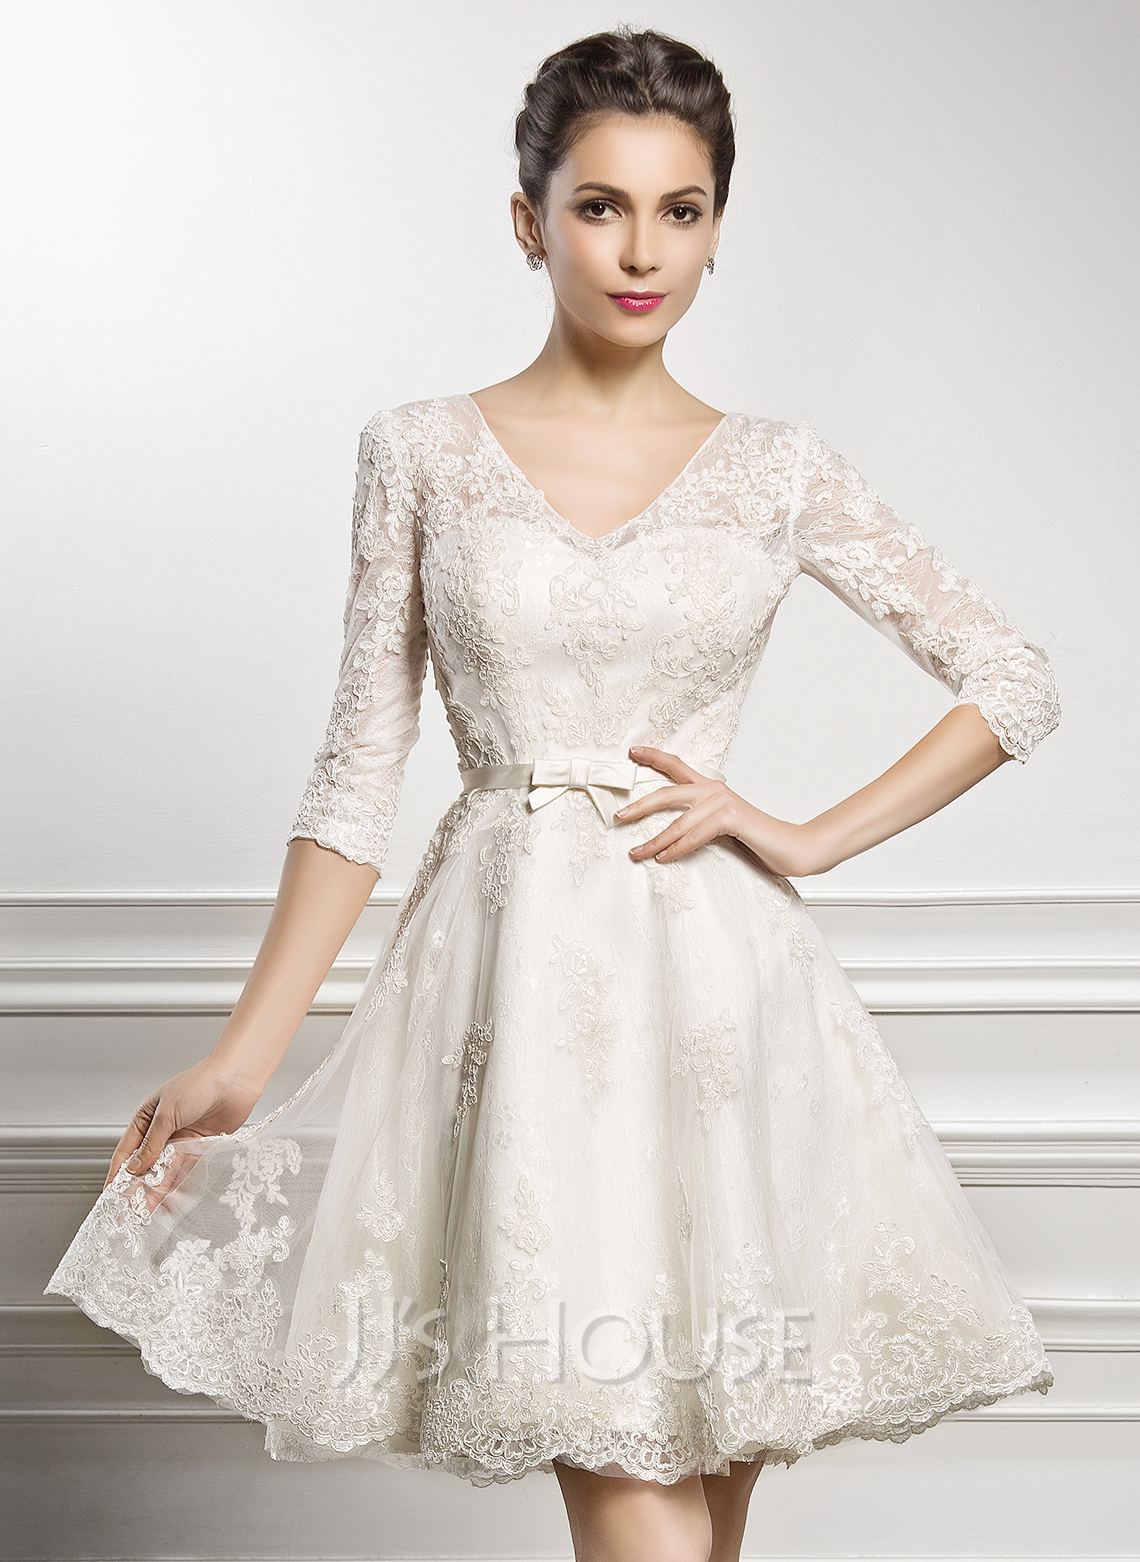 A lineprincess v neck knee length lace wedding dress with bows a lineprincess v neck knee length lace wedding dress with bow loading zoom junglespirit Image collections